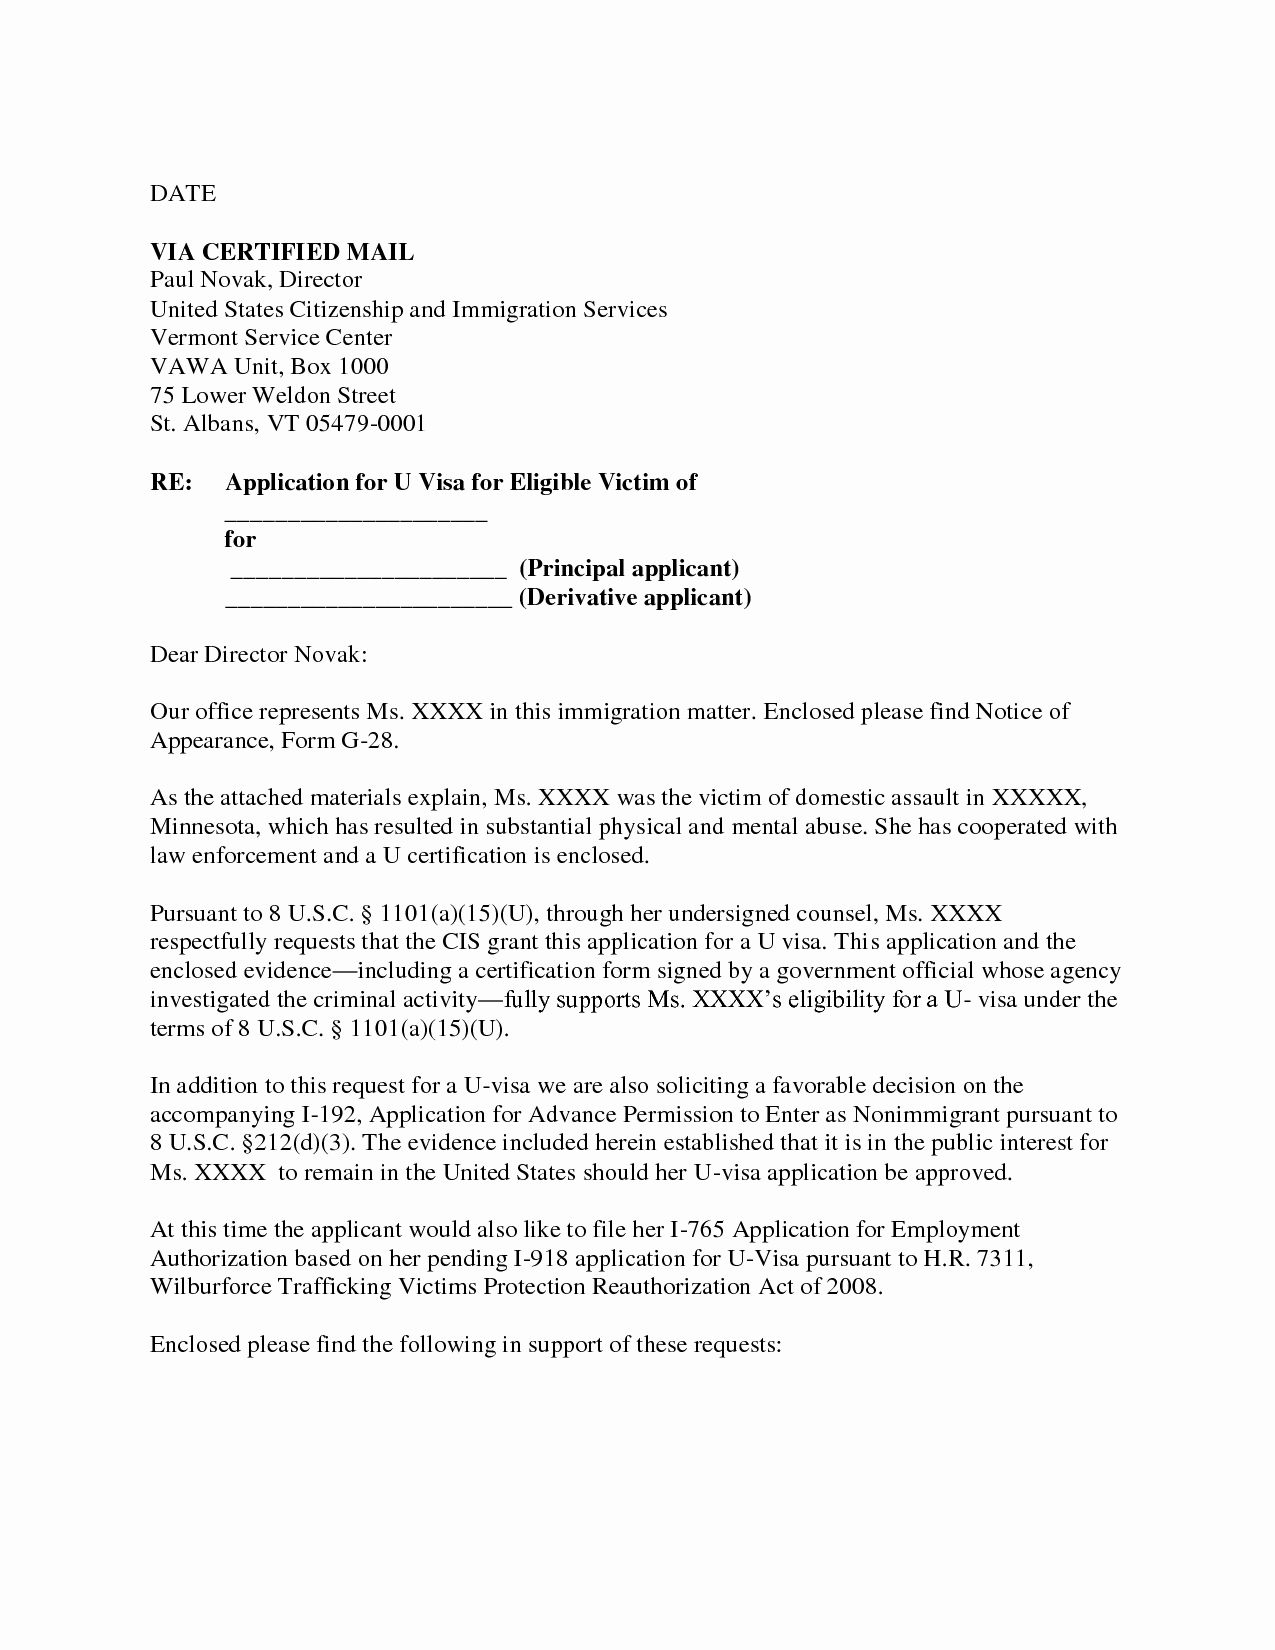 sample support letters for immigration unique letter cv education example resume pharmacy assistant without experience nursing job objective